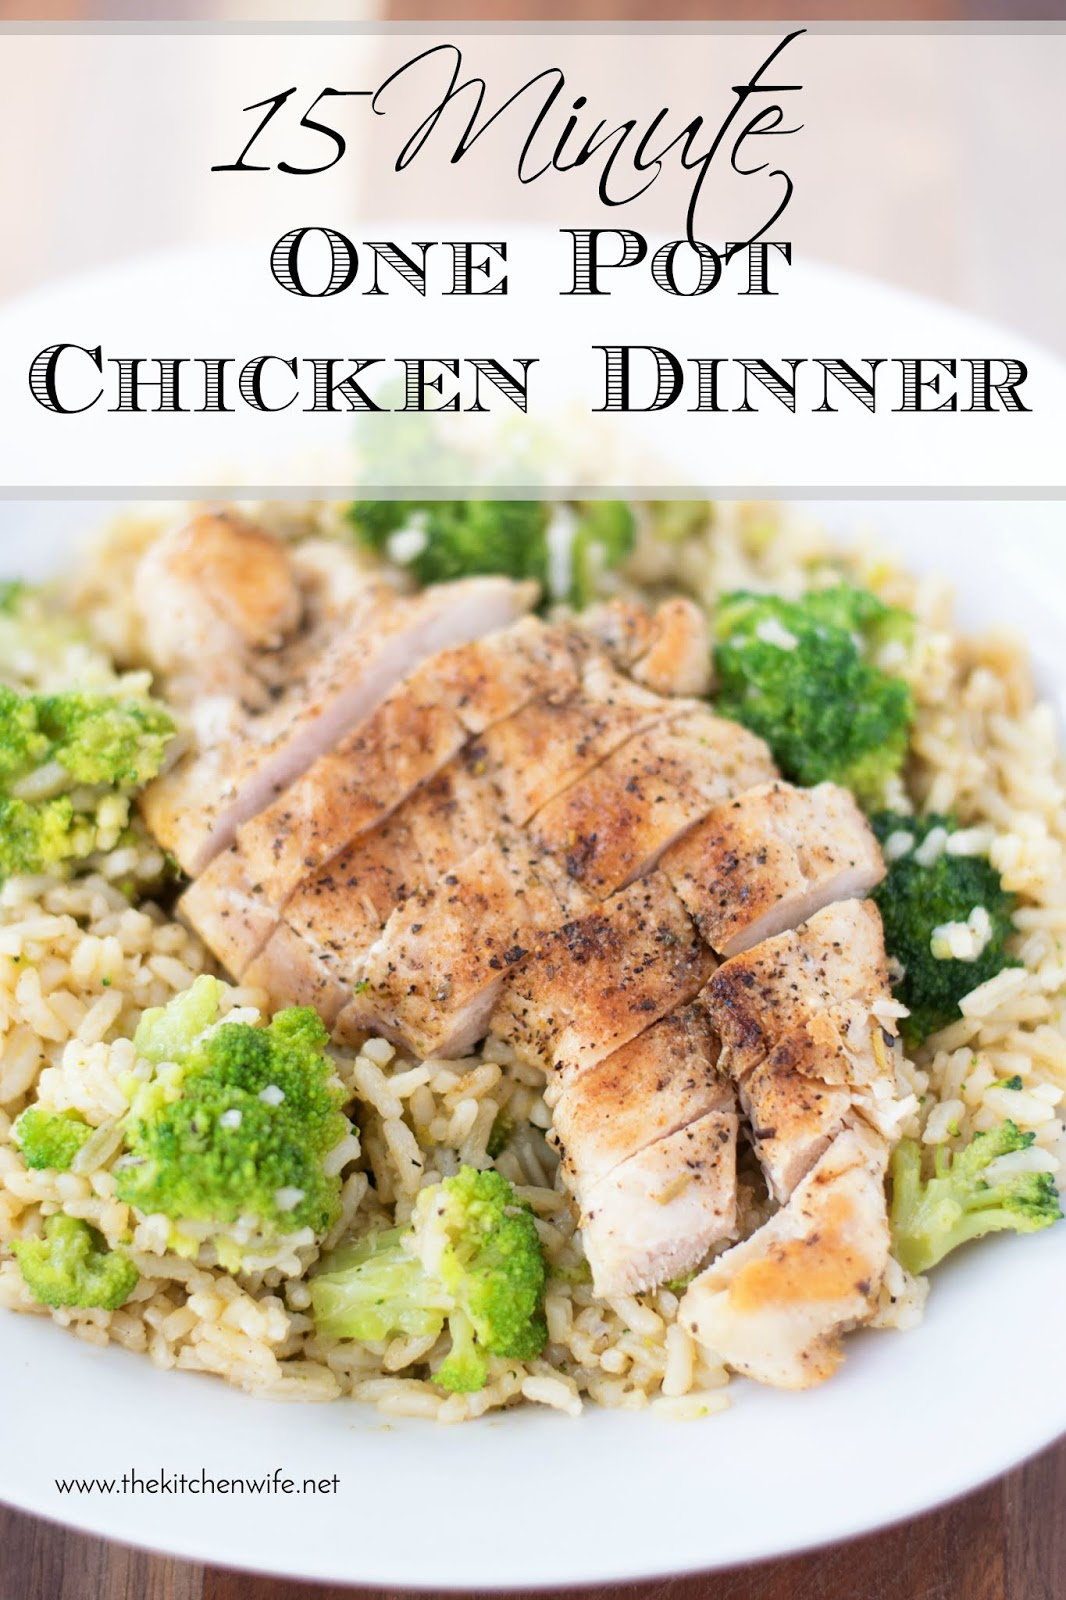 15 Minute One Pot Chicken Dinner Recipe The Kitchen Wife